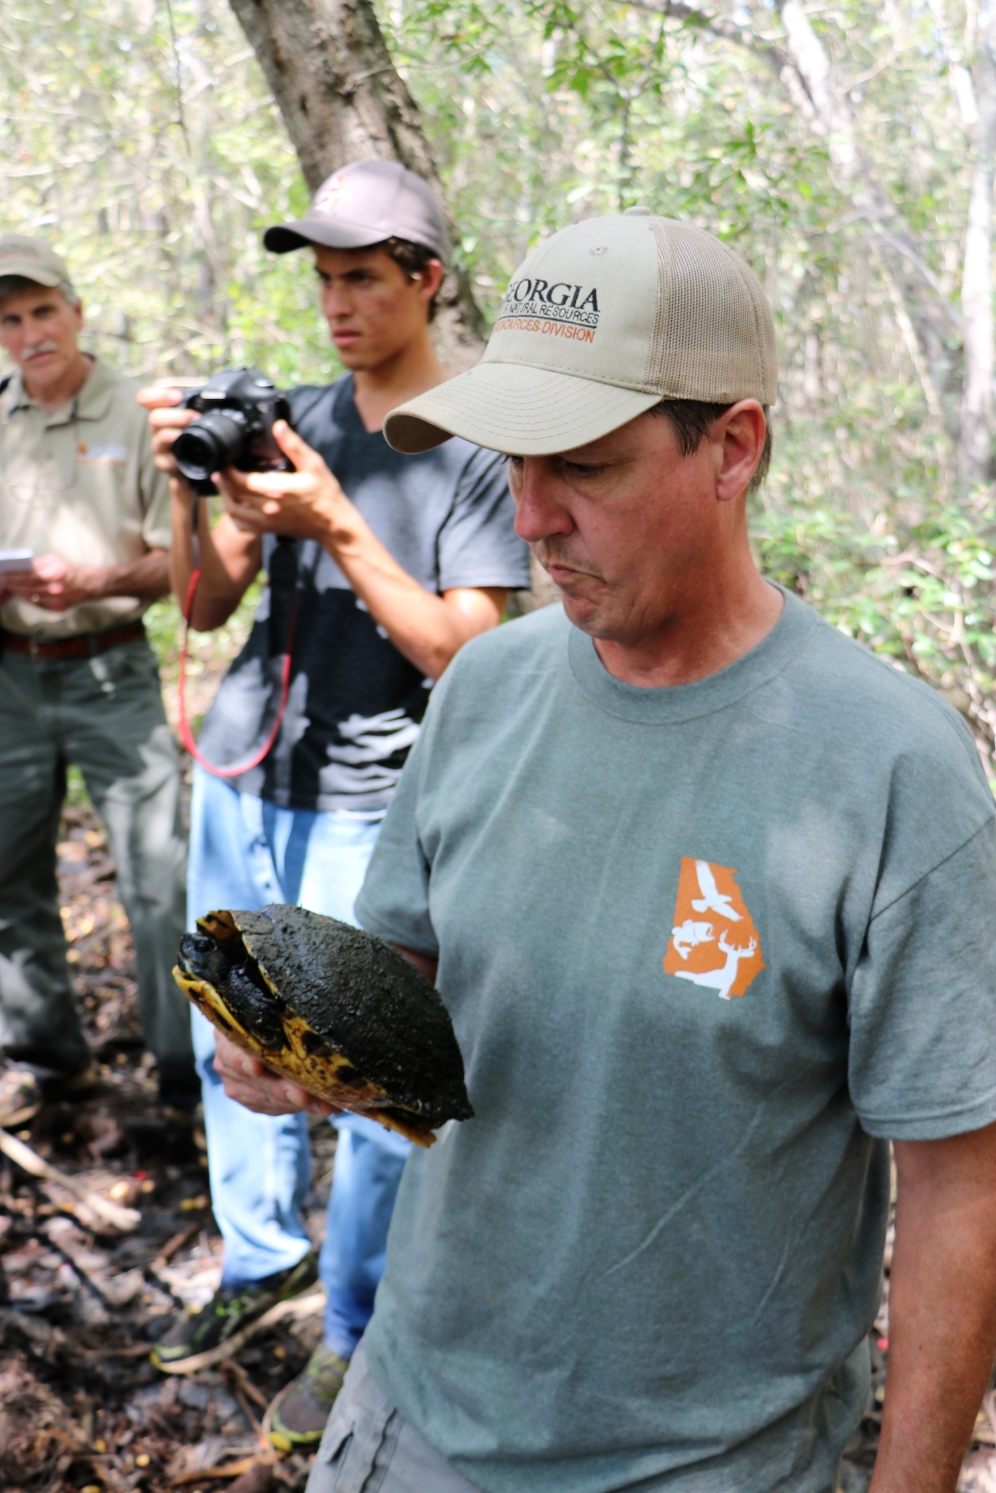 John Jensen (Georgia Department of Natural Resources) examining a common slider ( Trachemys   scripta ) captured in south-central Georgia. Photograph by George L. Heinrich.